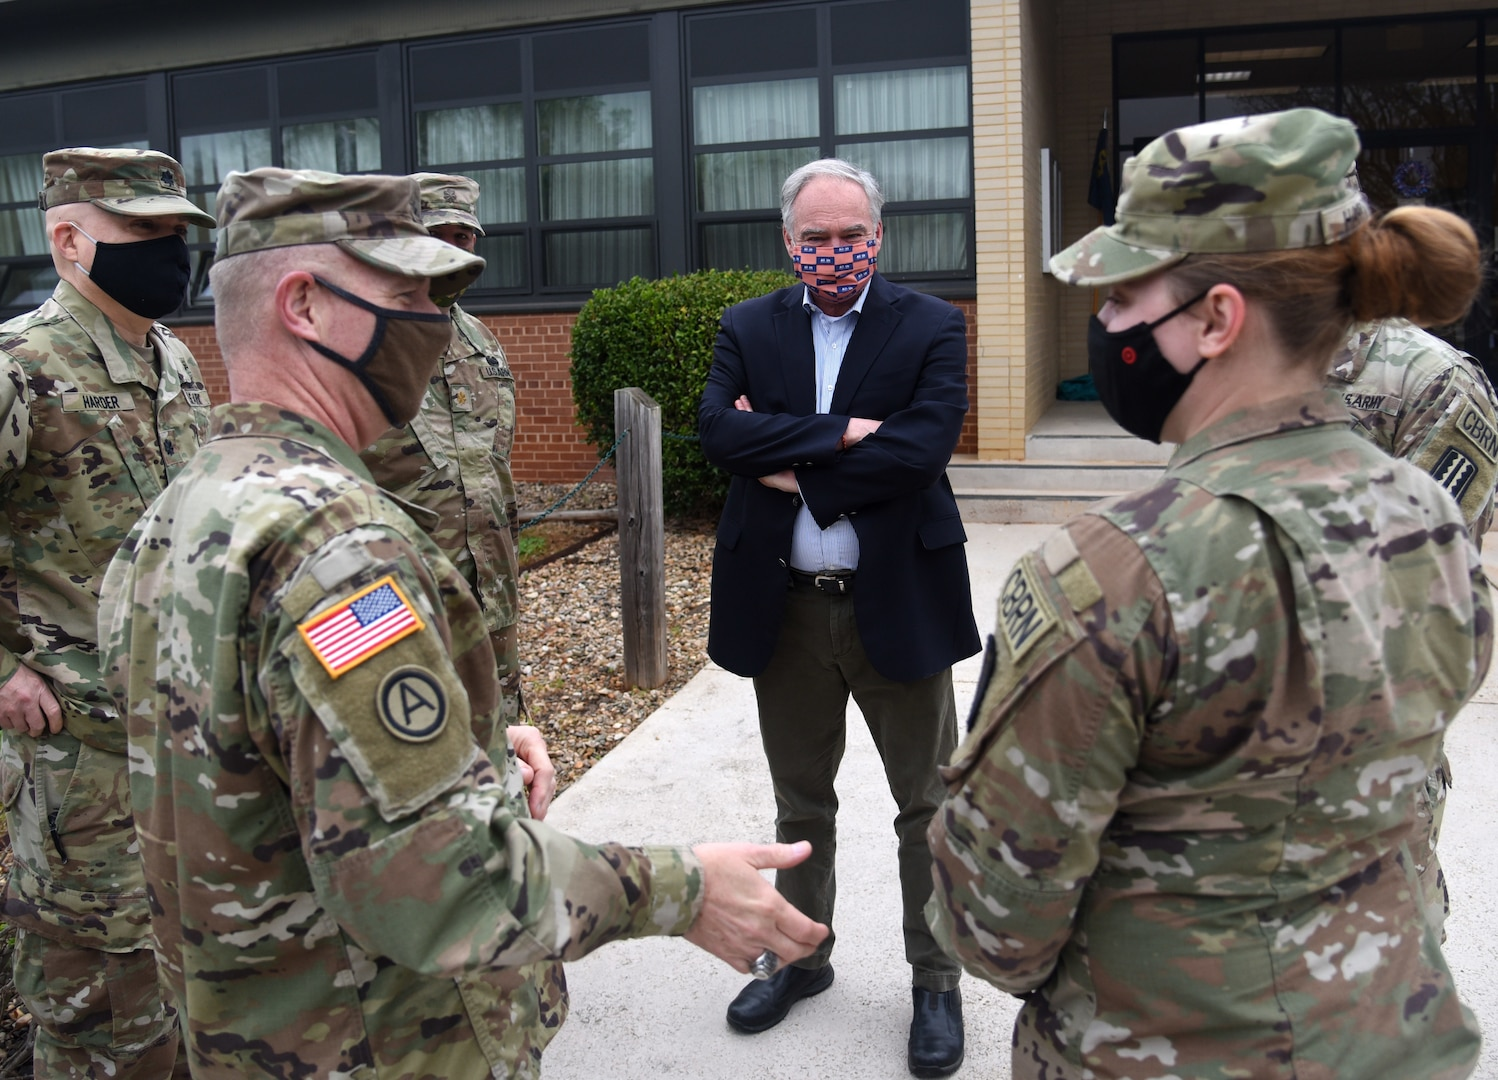 U.S. Sen. Tim Kaine visits with and thanks Virginia National Guard Soldiers assigned to the Rocky Mount-based 229th Chemical Company, 1030th Transportation Battalion, 329th Regional Support Group during a ceremony April 10, 2021, in Rocky Mount, Virginia.